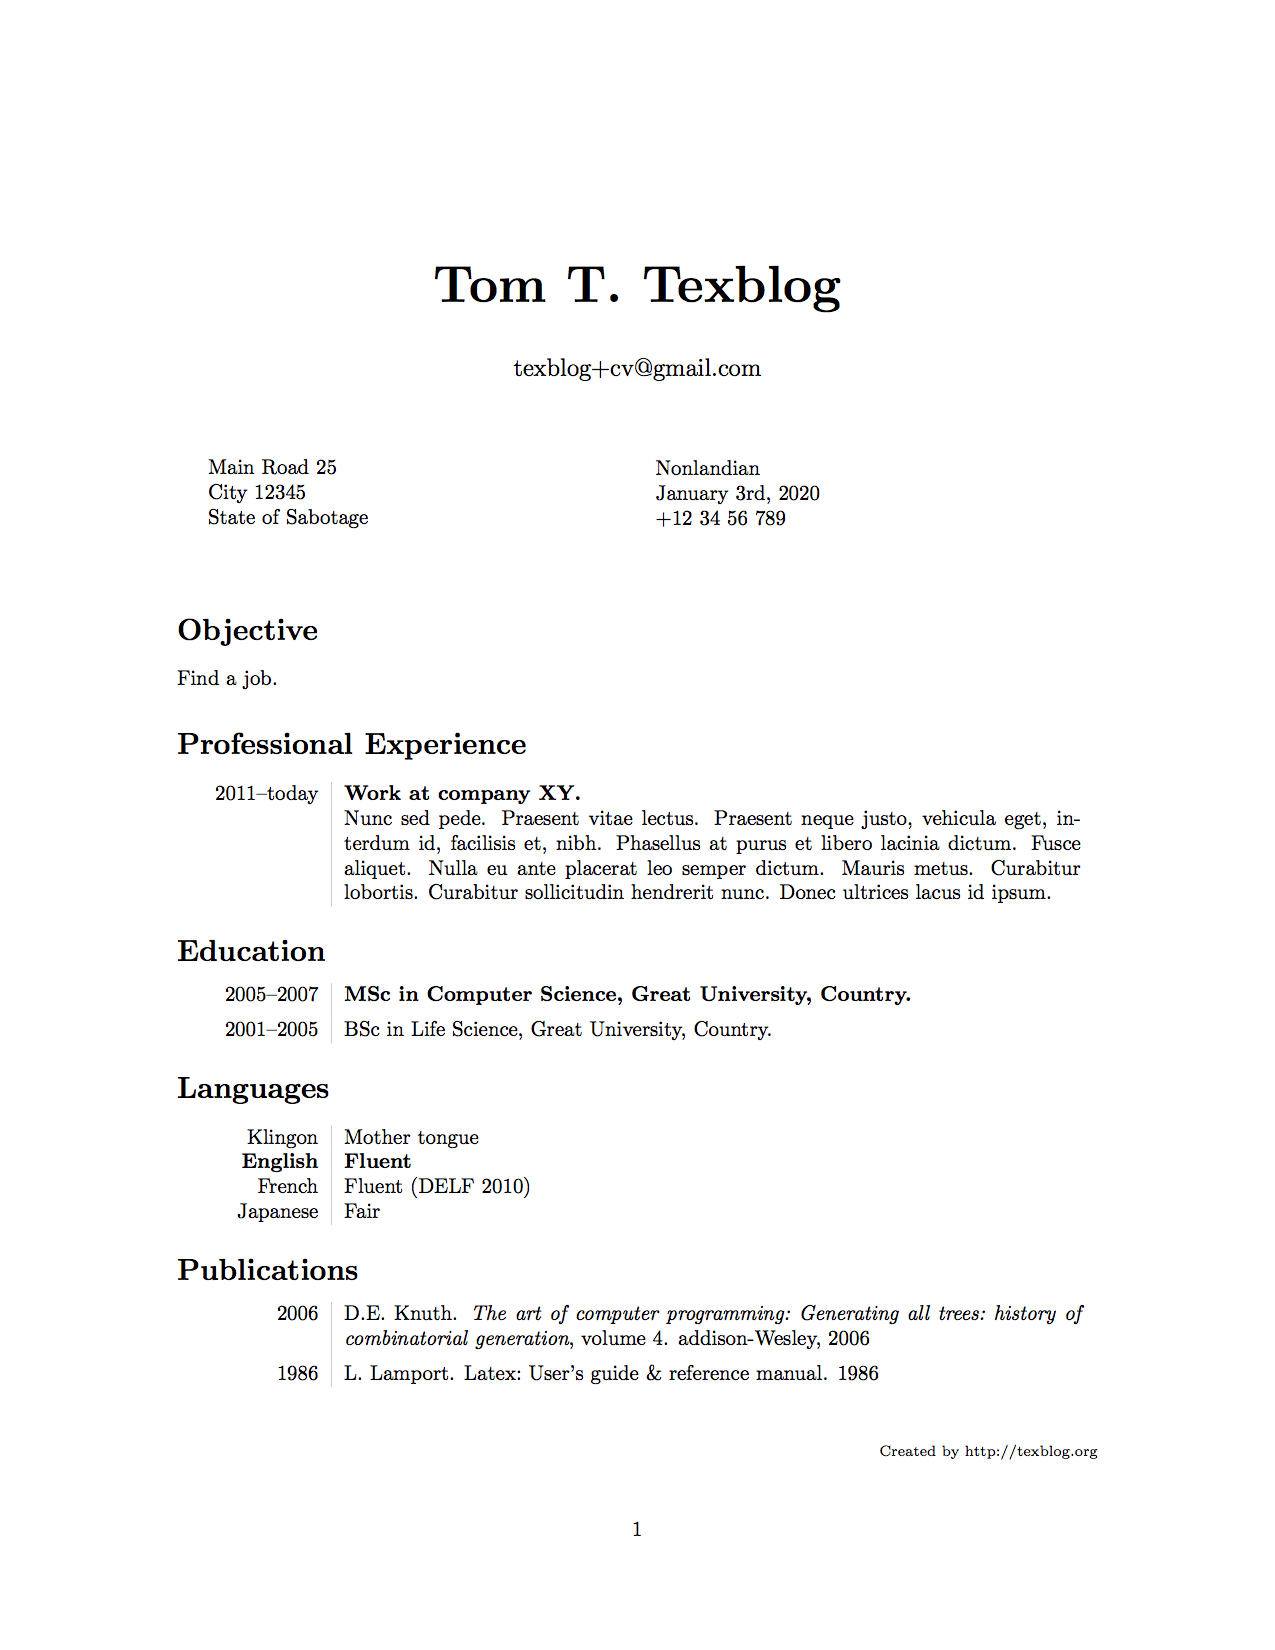 Scholarship Resume Template Cvtestfull  Latex Templates  Pinterest